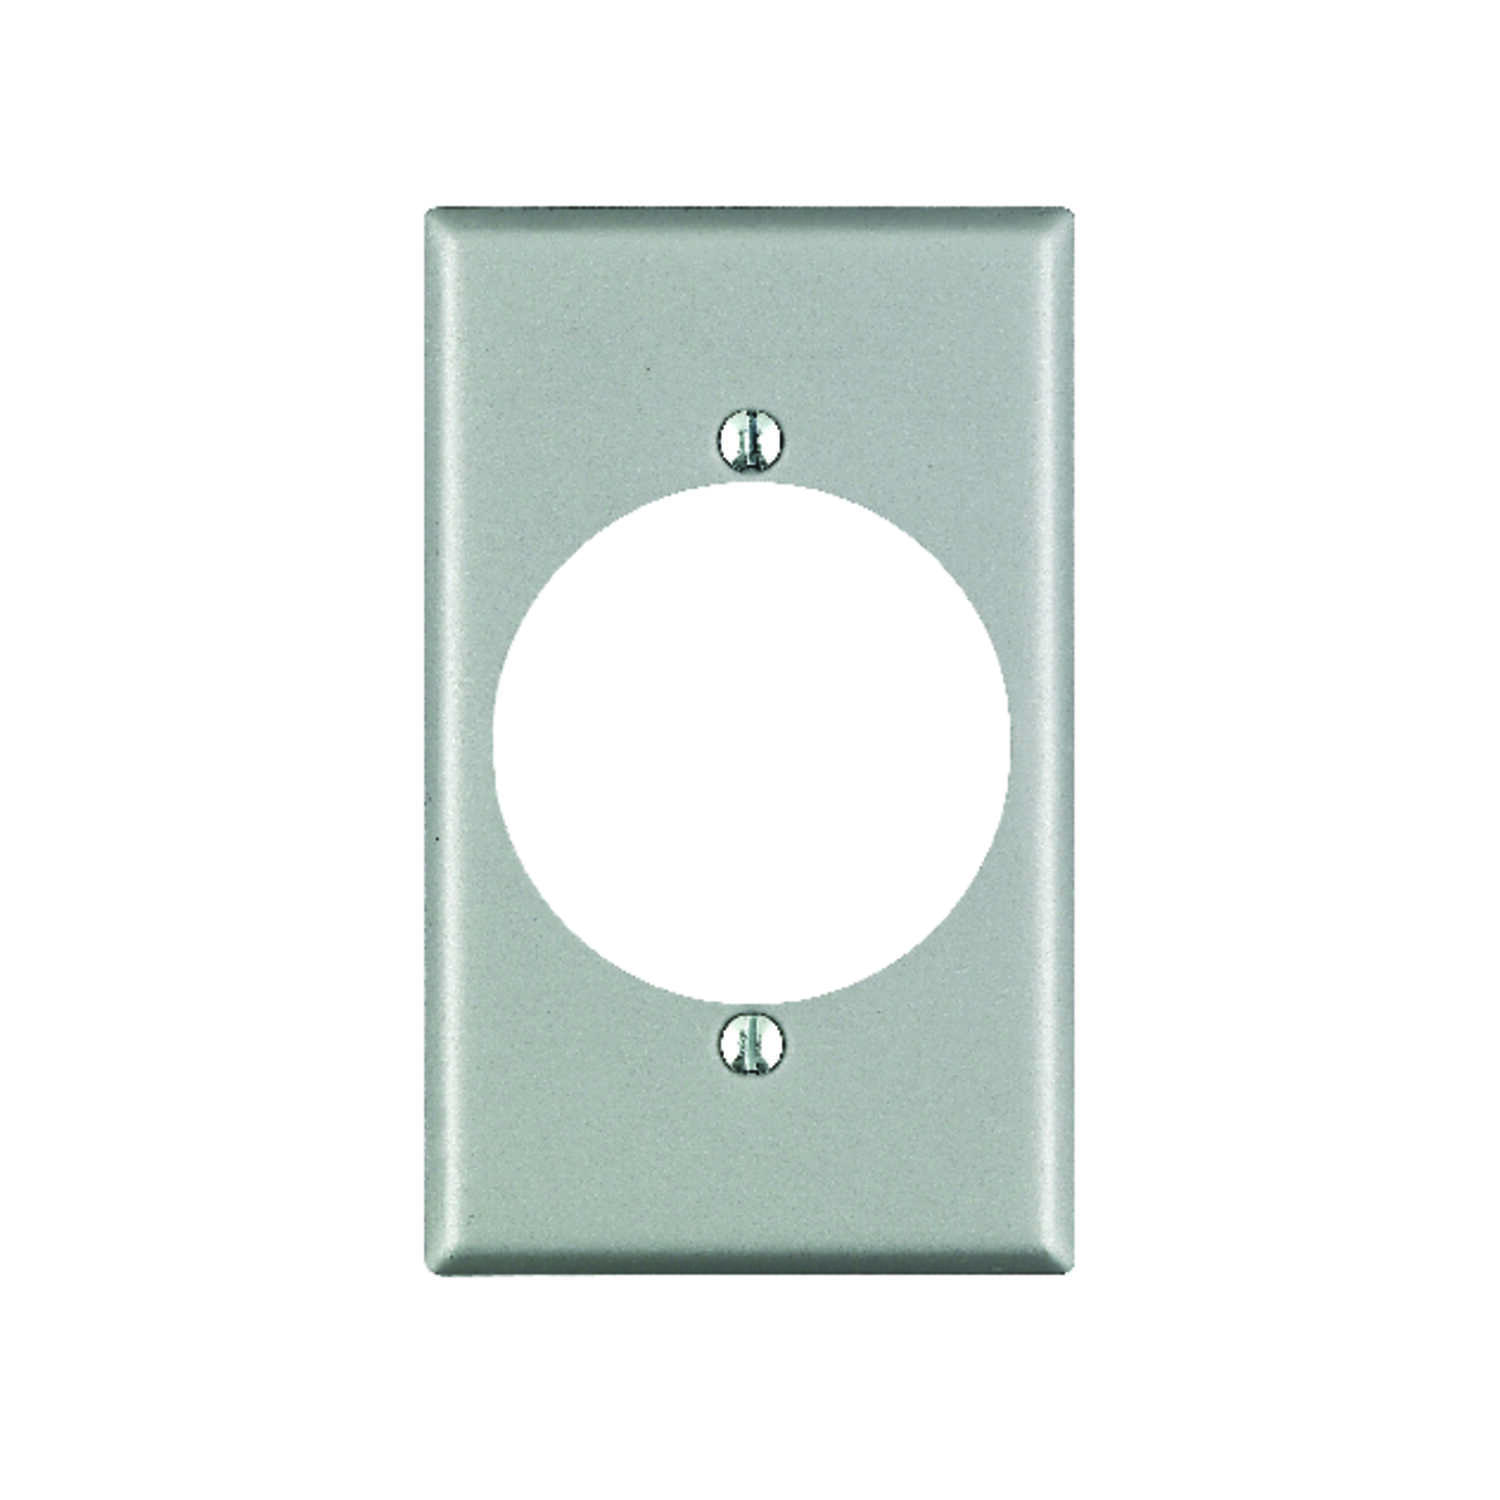 Leviton  Silver  1 gang Aluminum  Outlet  Wall Plate  1 pk